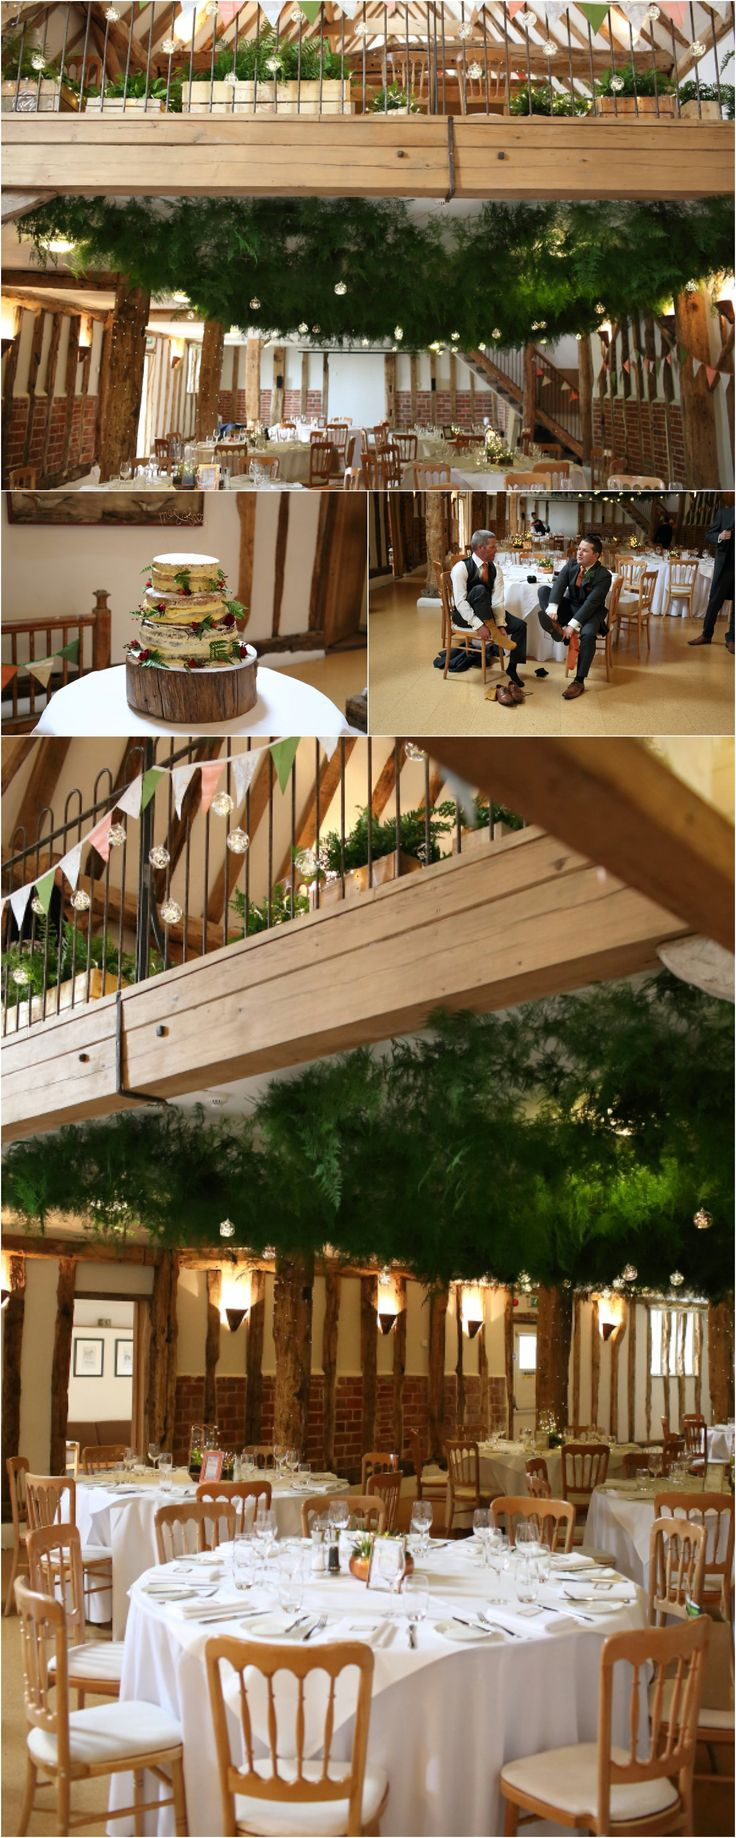 forest canopy at Moreves barn wedding, green foliage by Wild Poppies florist.  Naked cake.  Reportage wedding photography Suffolk.